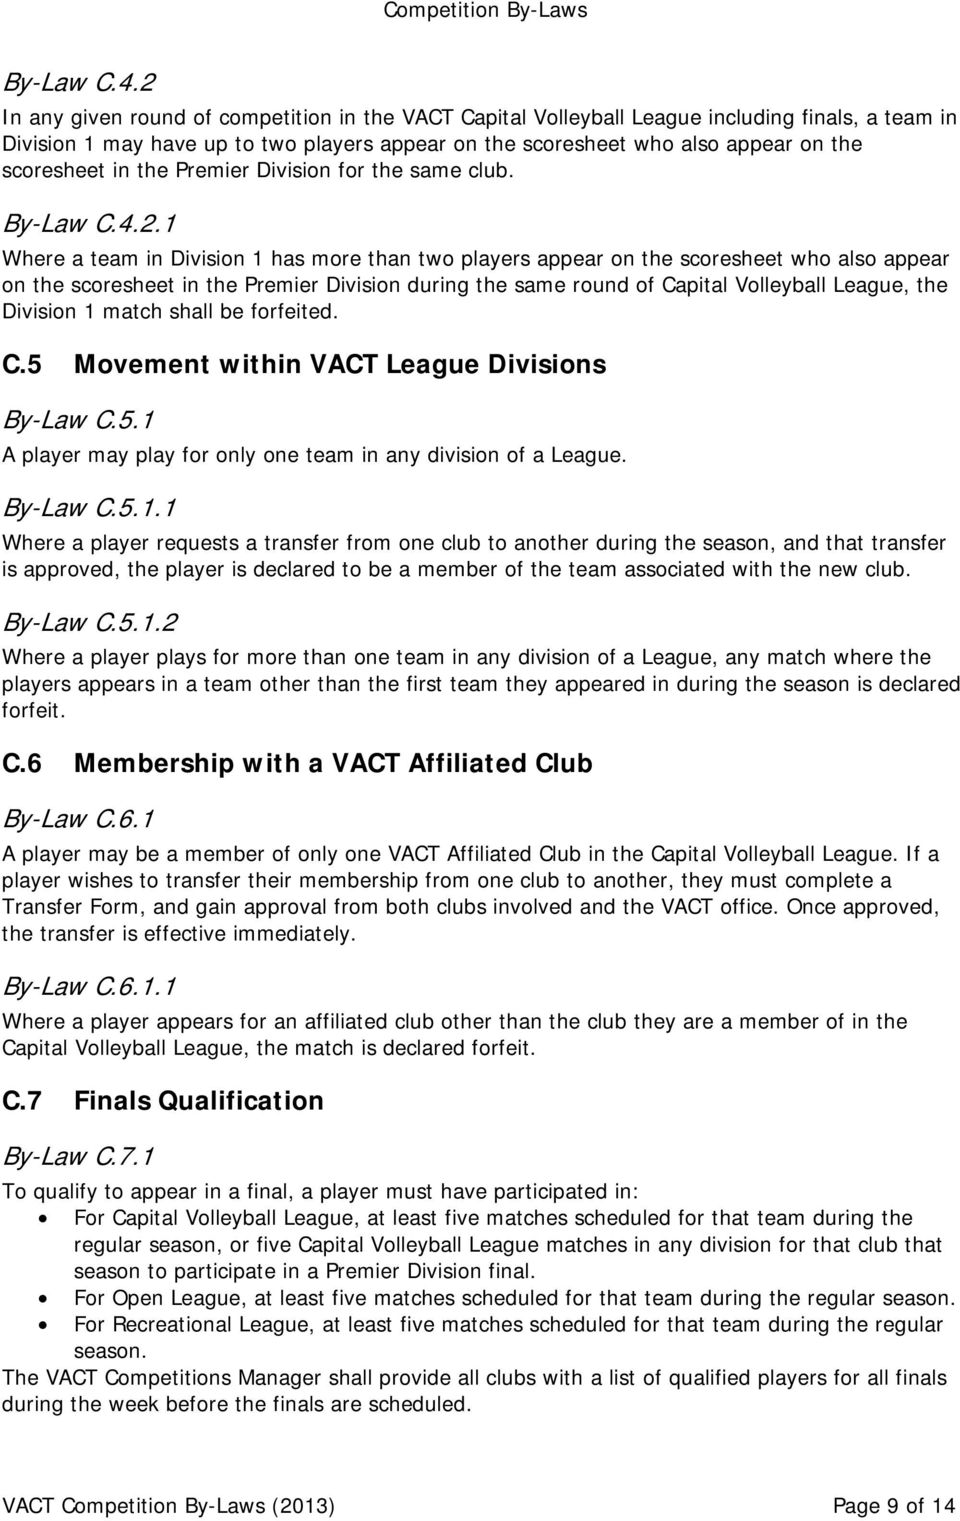 in the Premier Division for the same club. By-Law C.4.2.